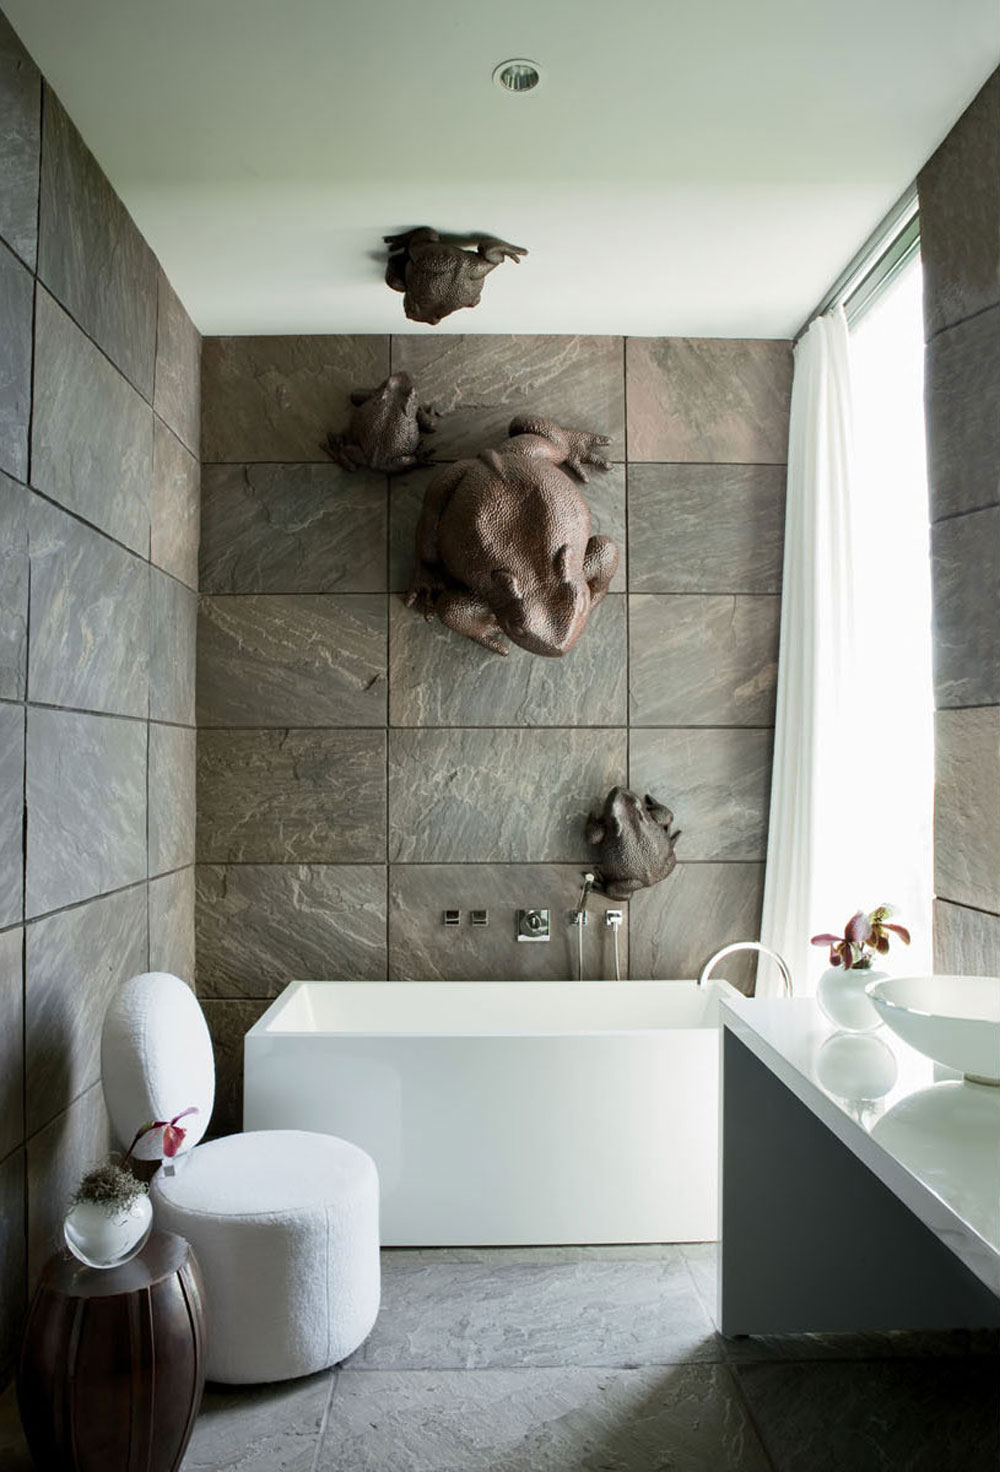 Looking for inspiration for modern bathroom interiors-6 Looking for inspiration for modern bathroom interiors?